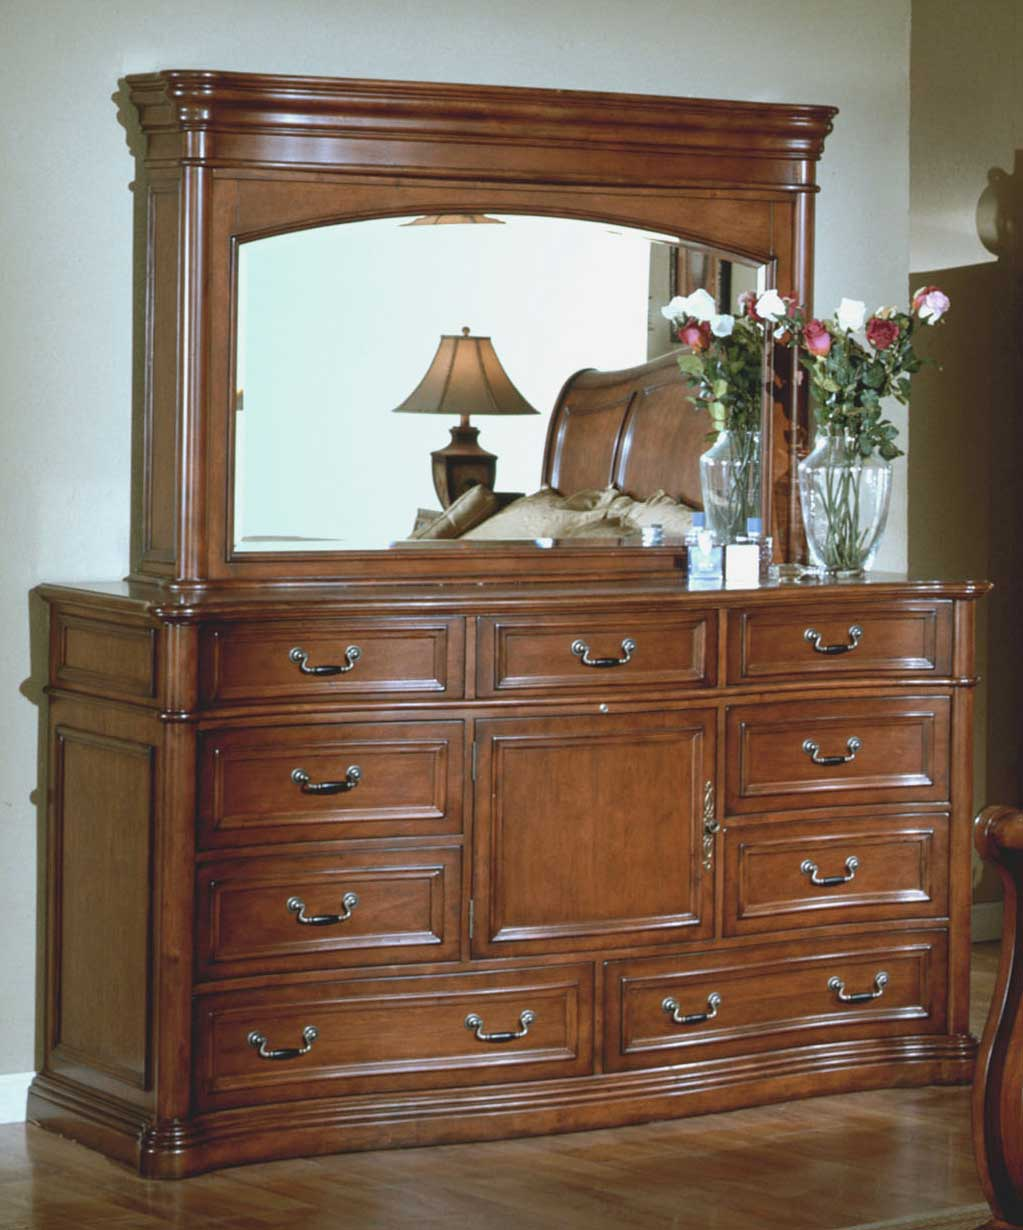 Ashley Furniture Olean Ny: Dresser With Hutch Mirror